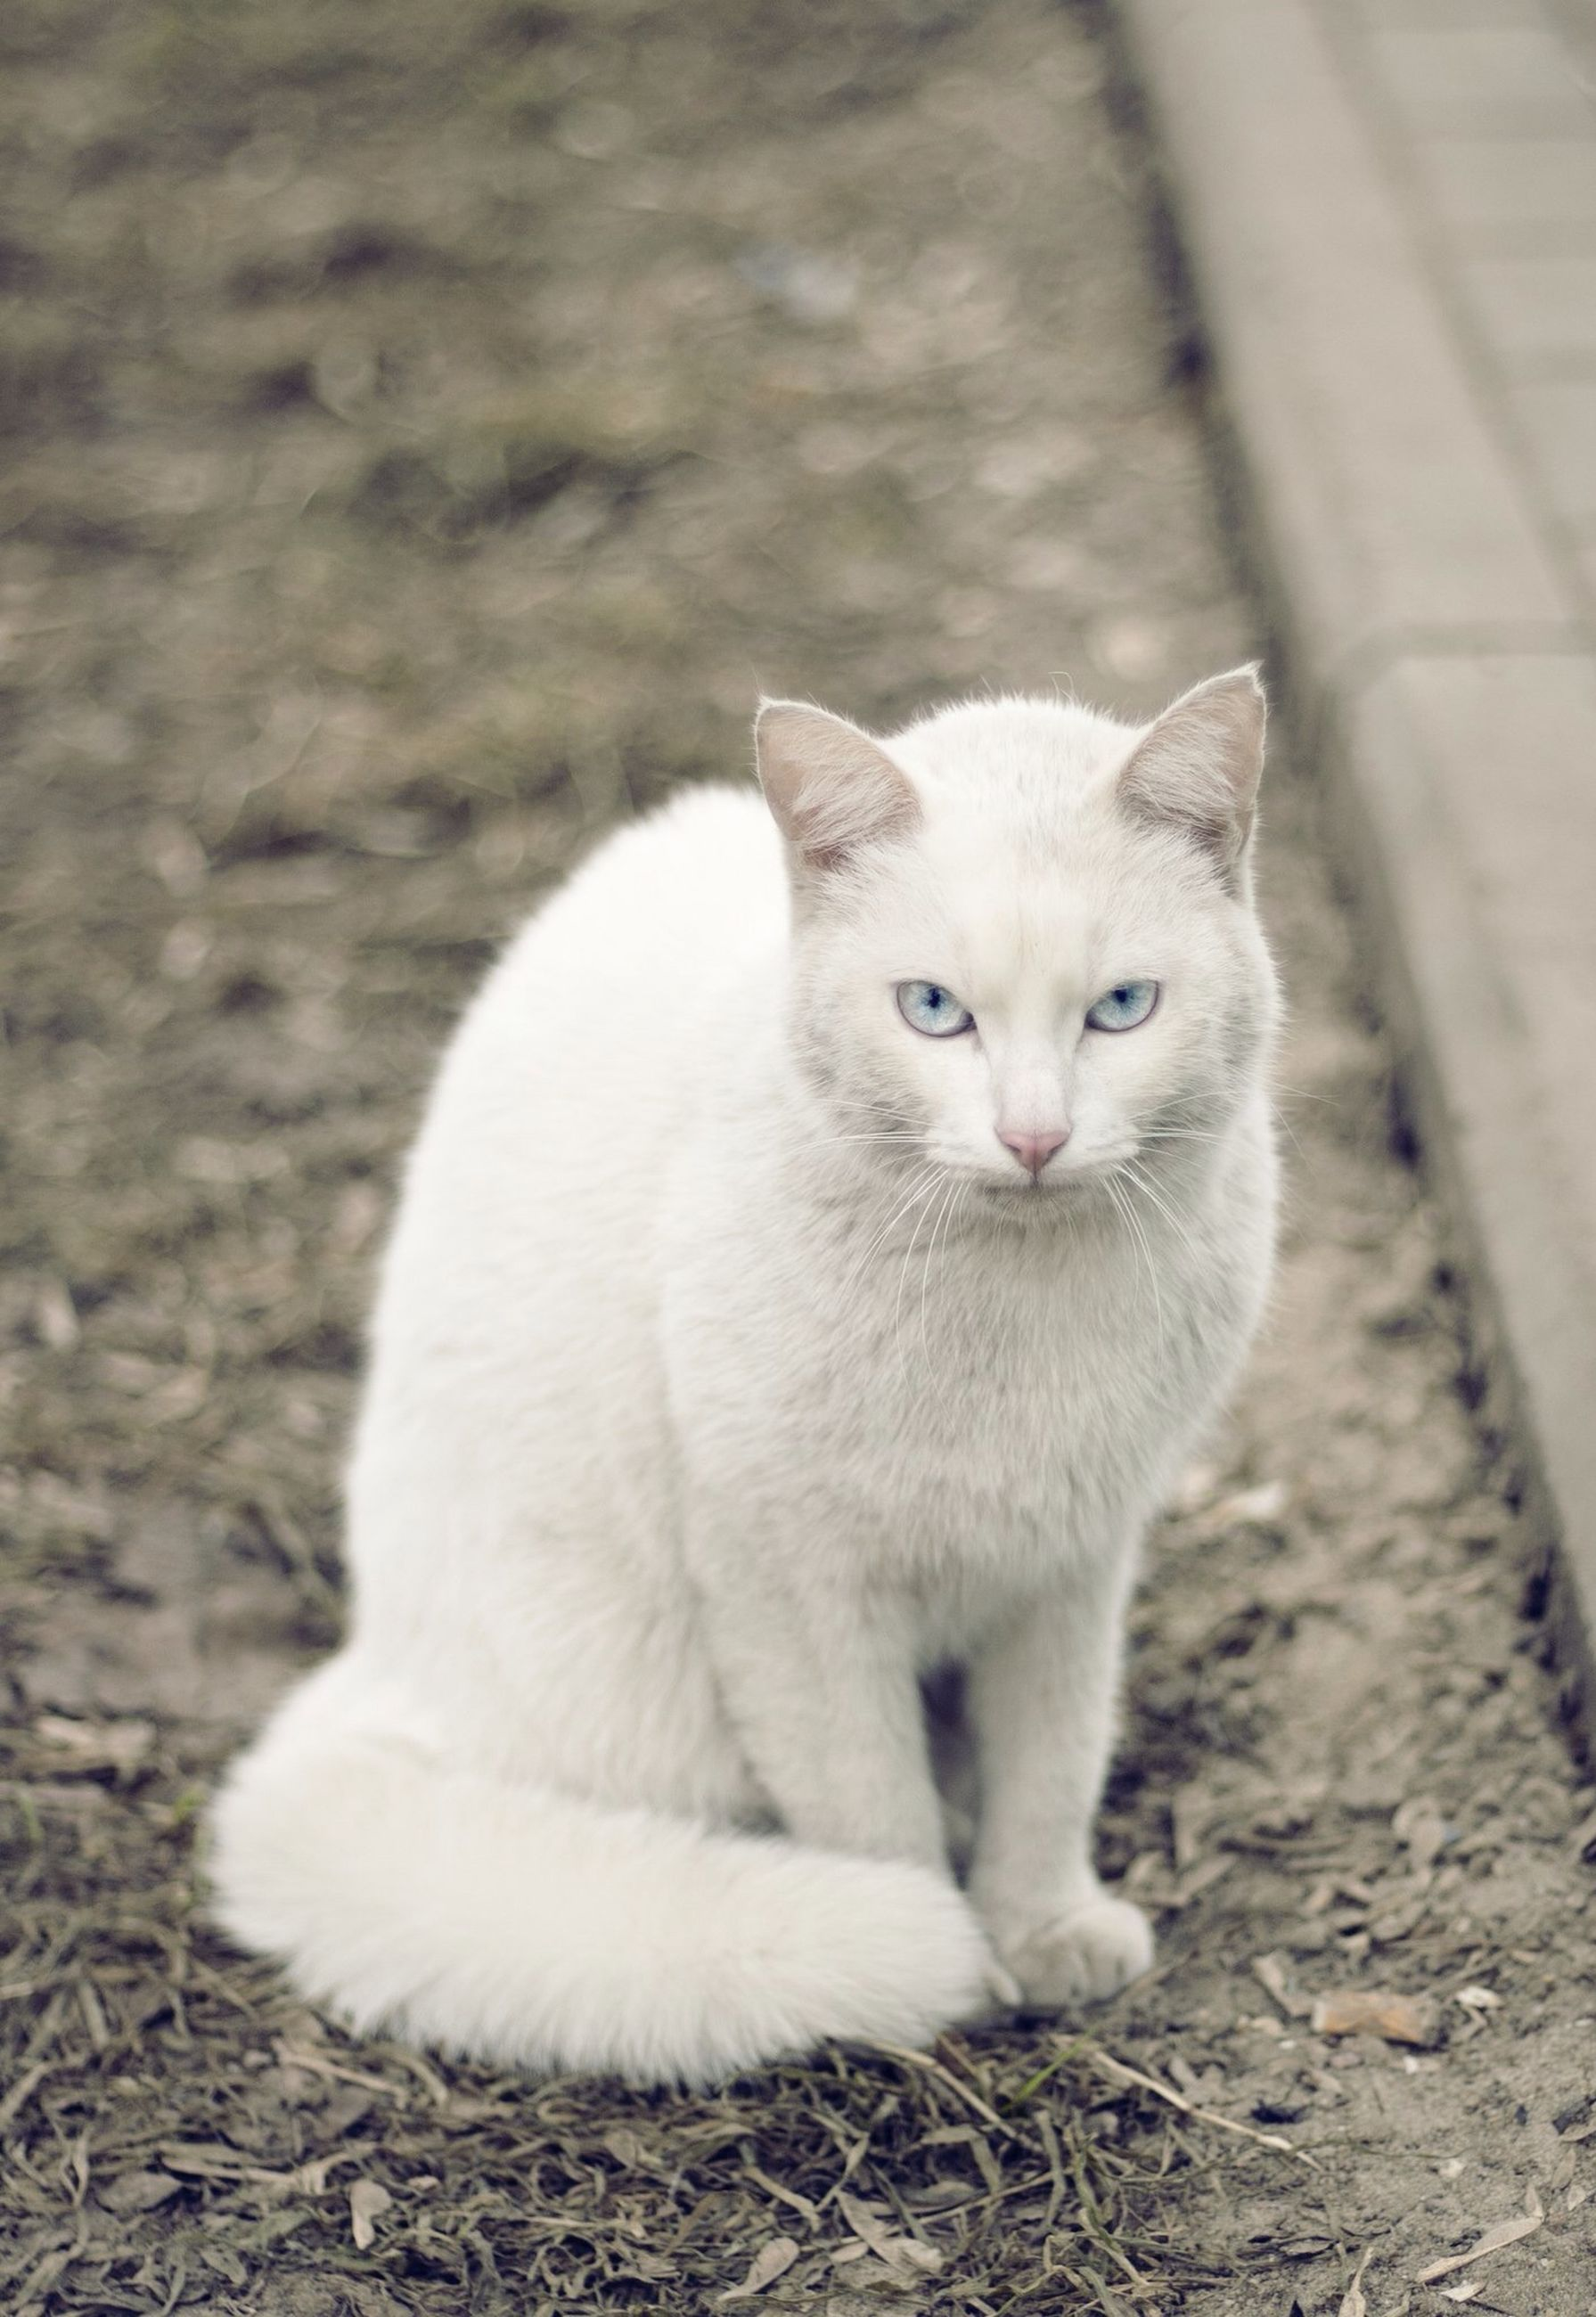 animal themes, one animal, domestic cat, white color, cat, mammal, domestic animals, feline, close-up, pets, focus on foreground, relaxation, whisker, wildlife, high angle view, outdoors, no people, day, white, animal head